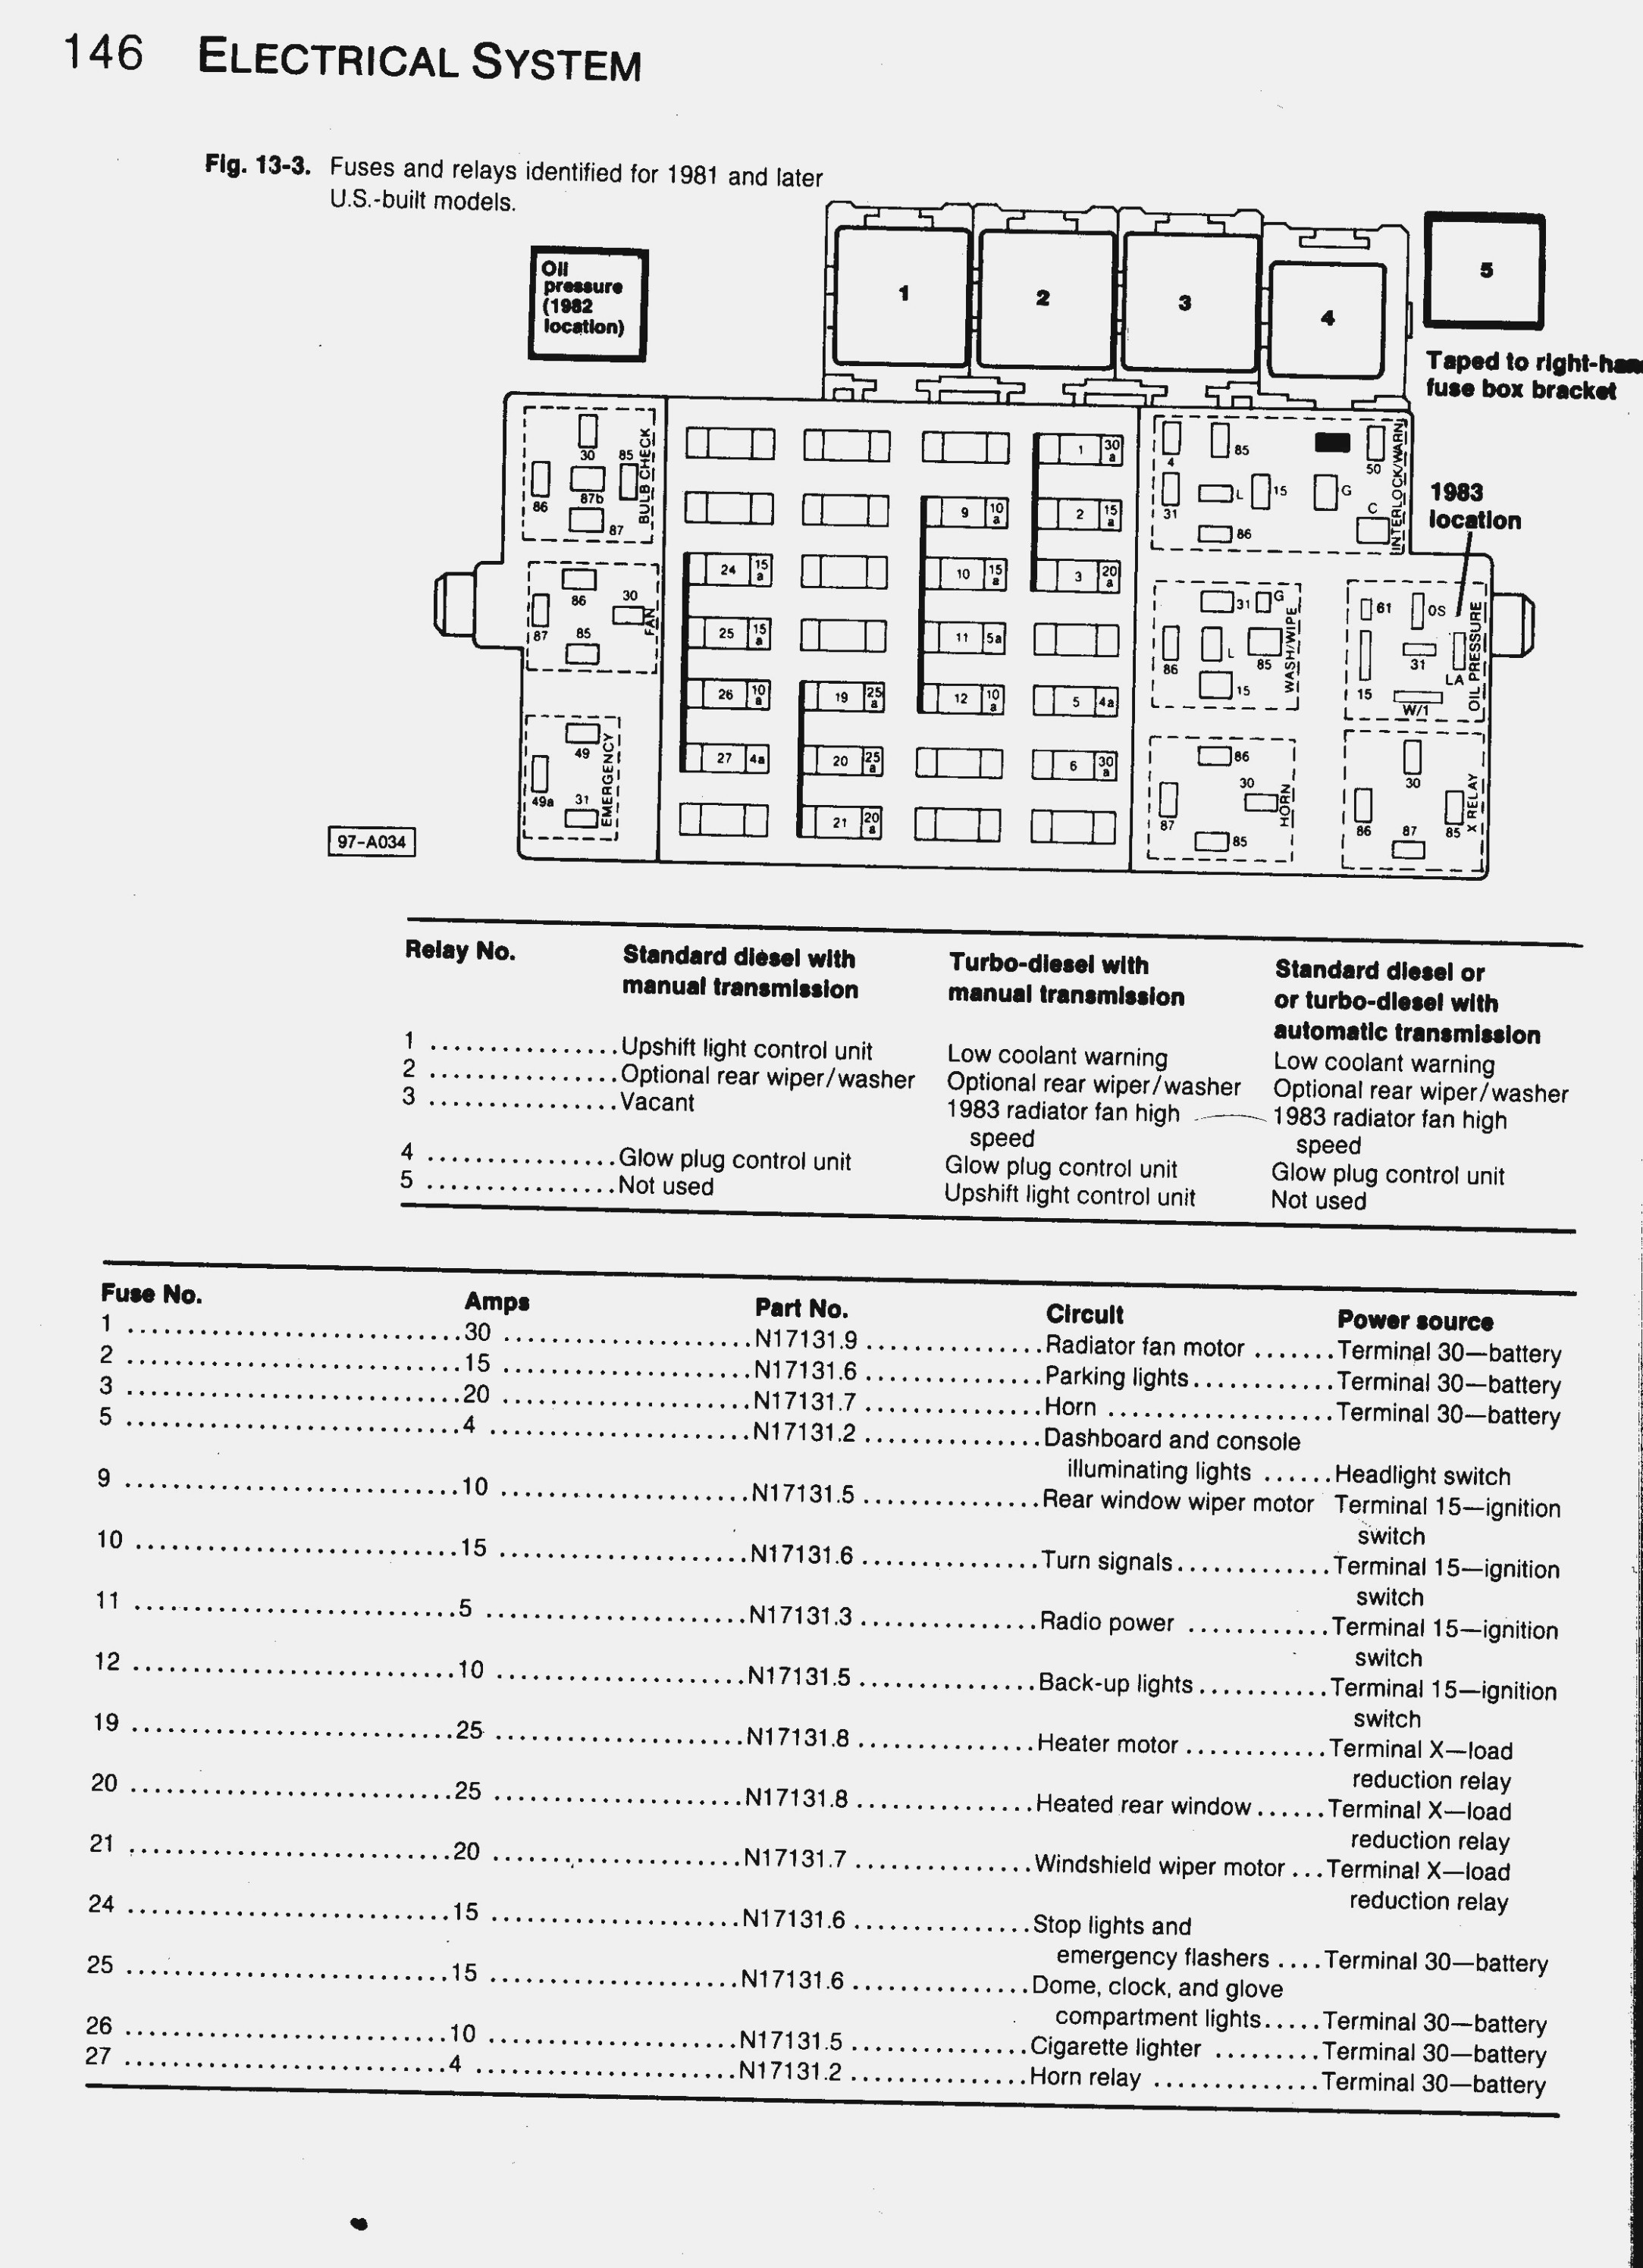 International 8500 Fuse Box Diagram International Fuse Diagram Wiring Diagram Archive Of International 8500 Fuse Box Diagram